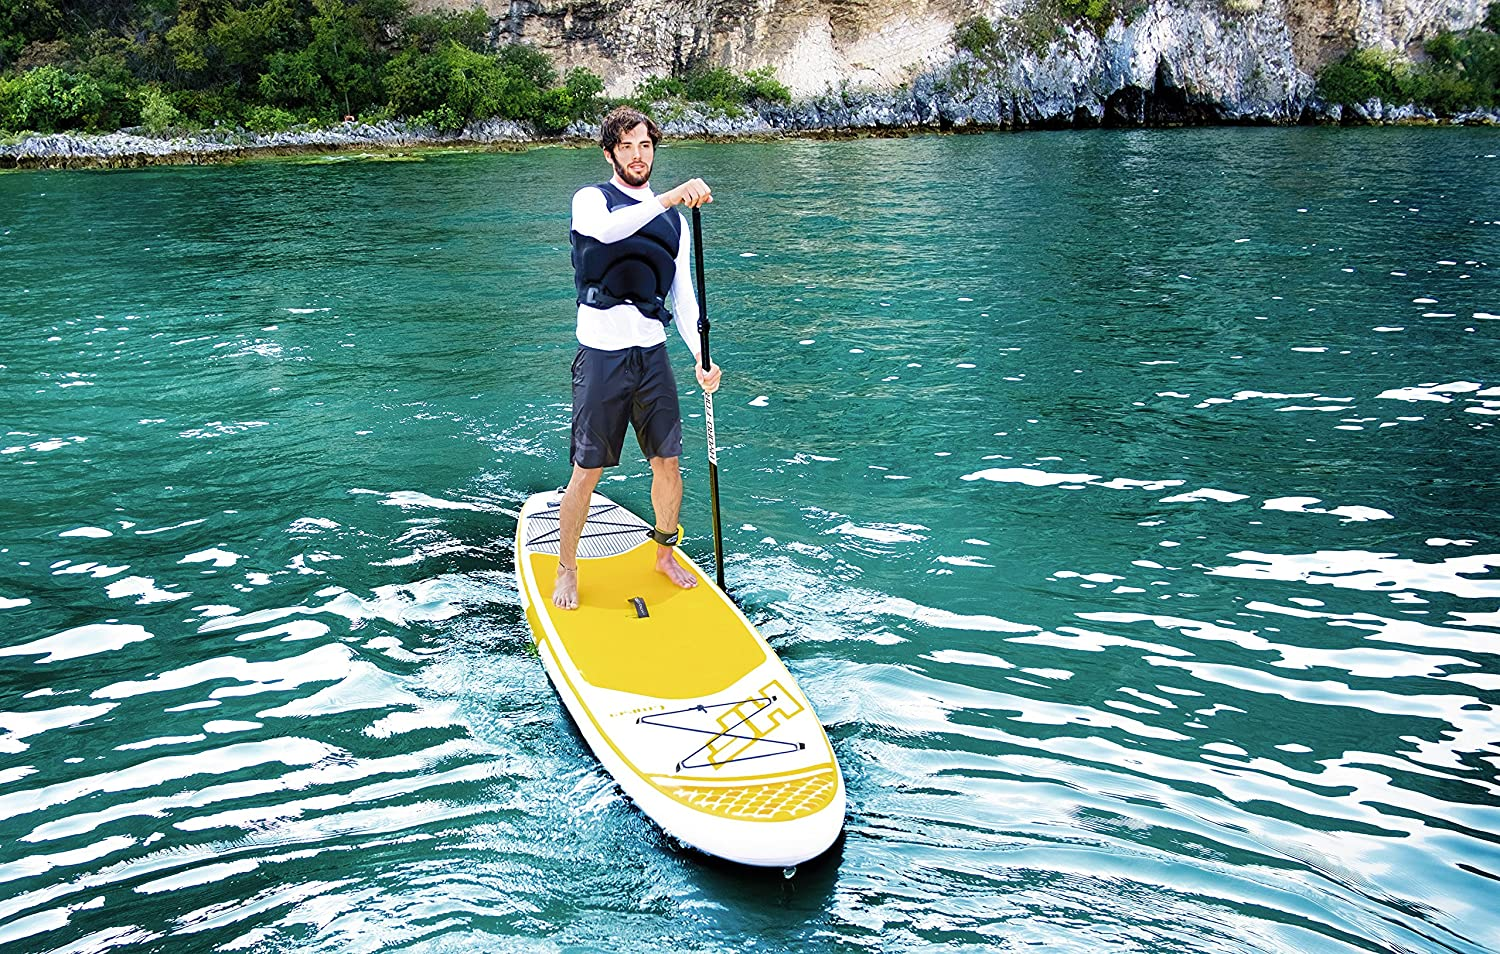 """Amazon.com : Bestway Hydro-Force Cruiser Tech Inflatable Stand Up Paddle  Board, 10'6"""" x 30"""" x 6"""" : Sports & Outdoors"""